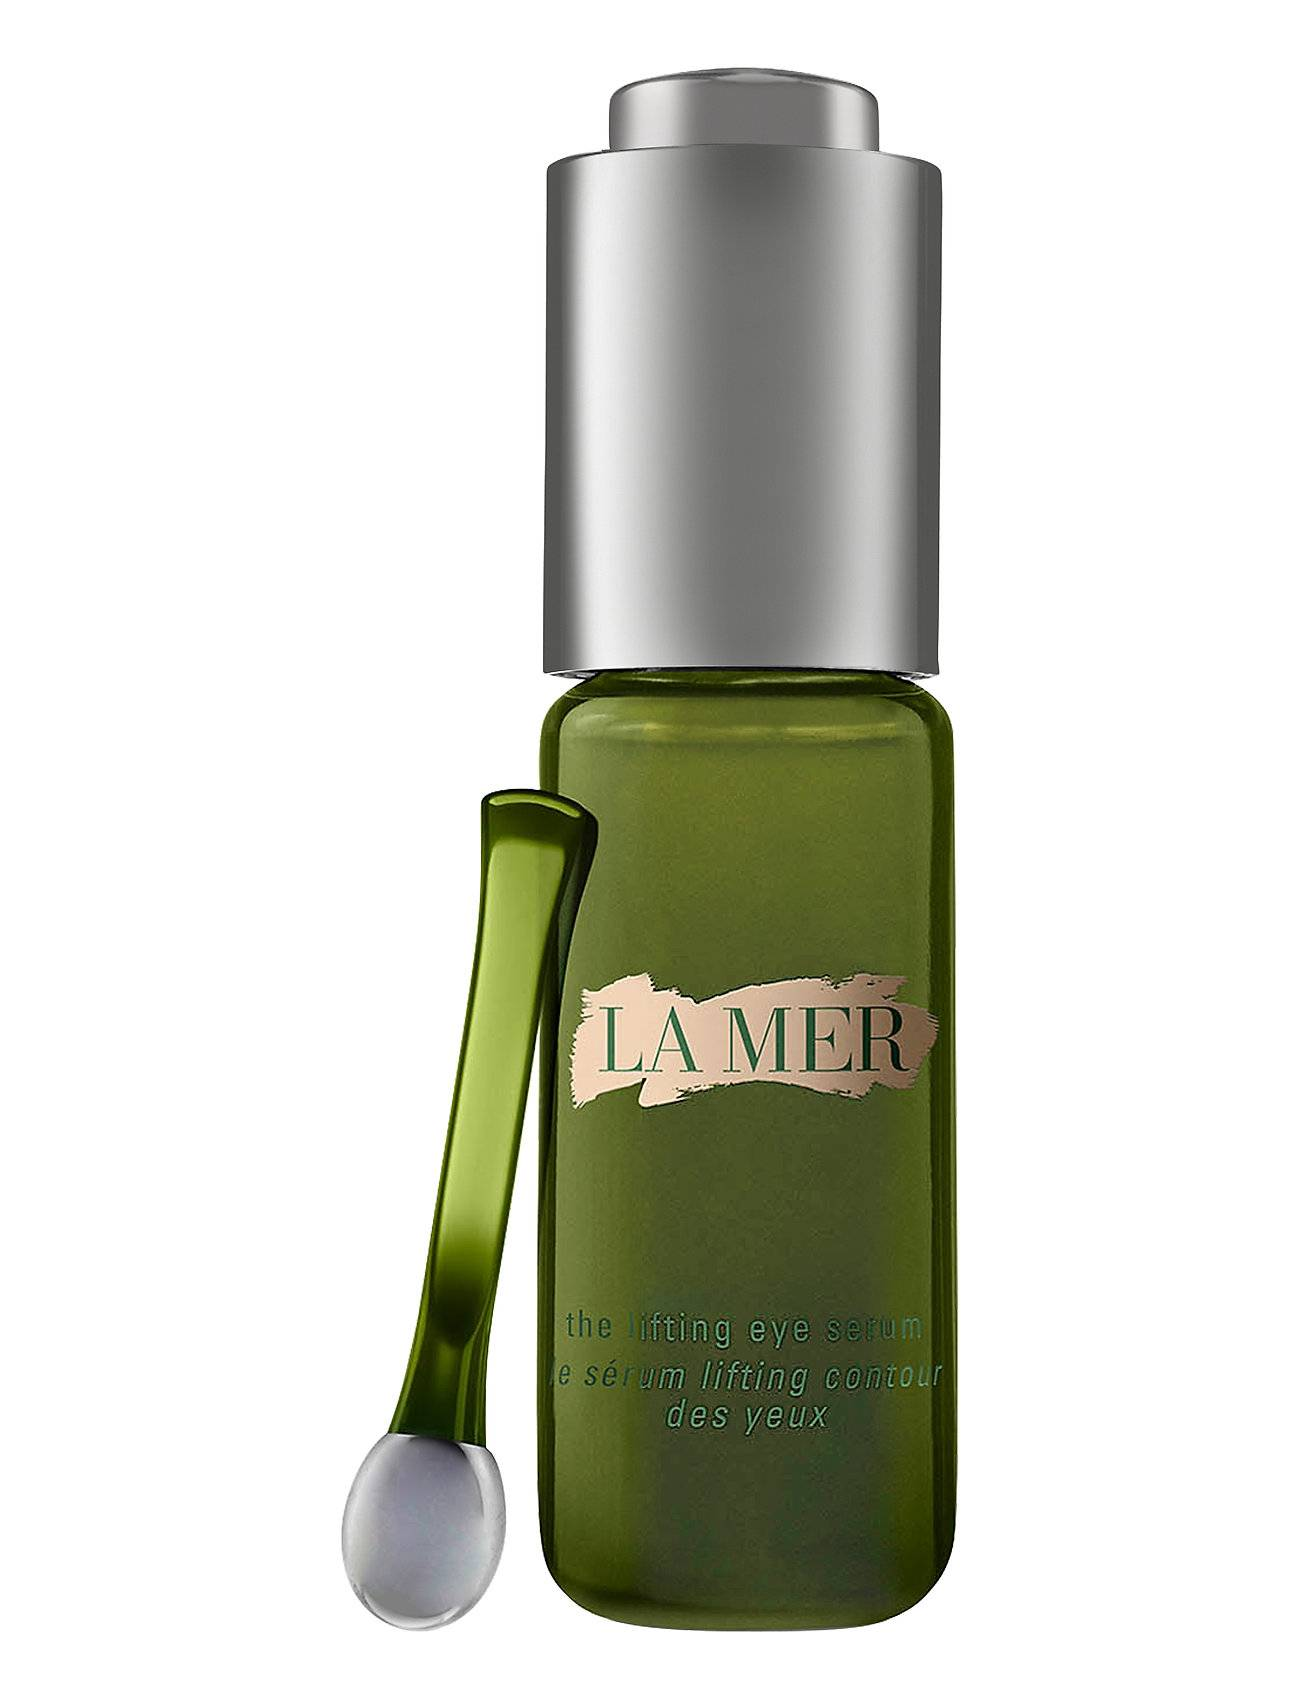 La Mer The Lifting Eye Serum